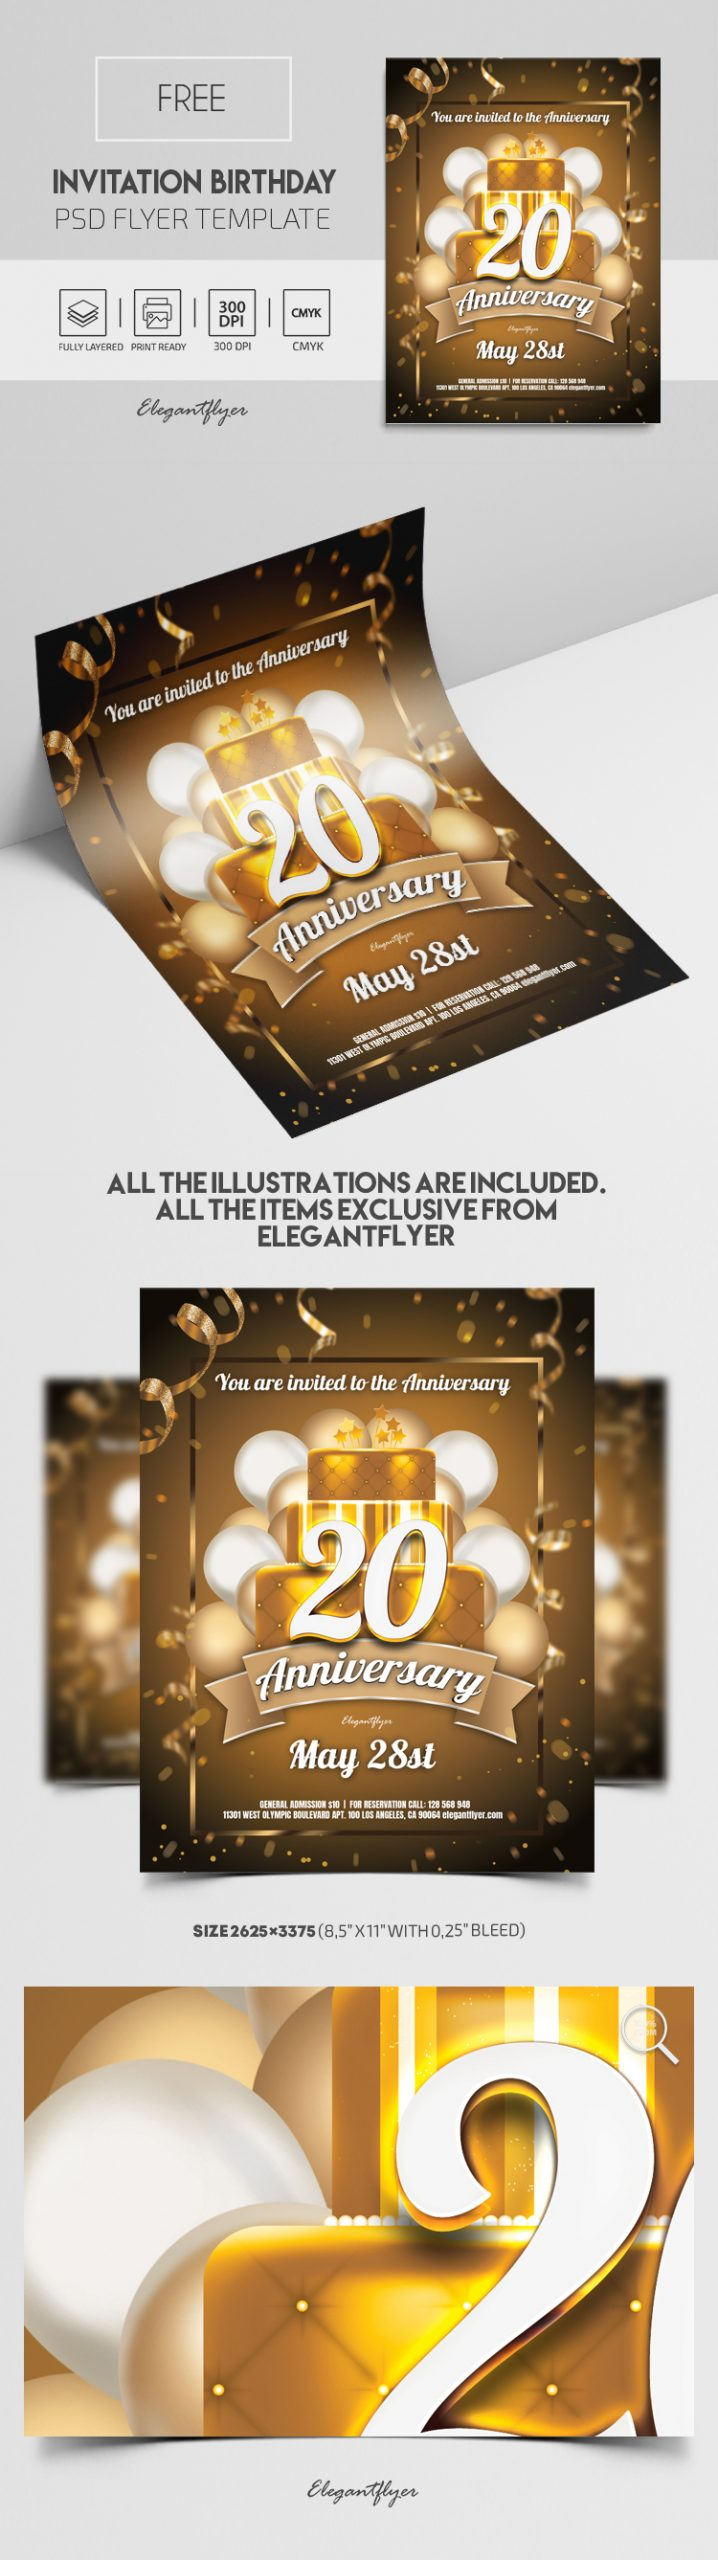 Invitation Birthday – Free PSD Invitation Template